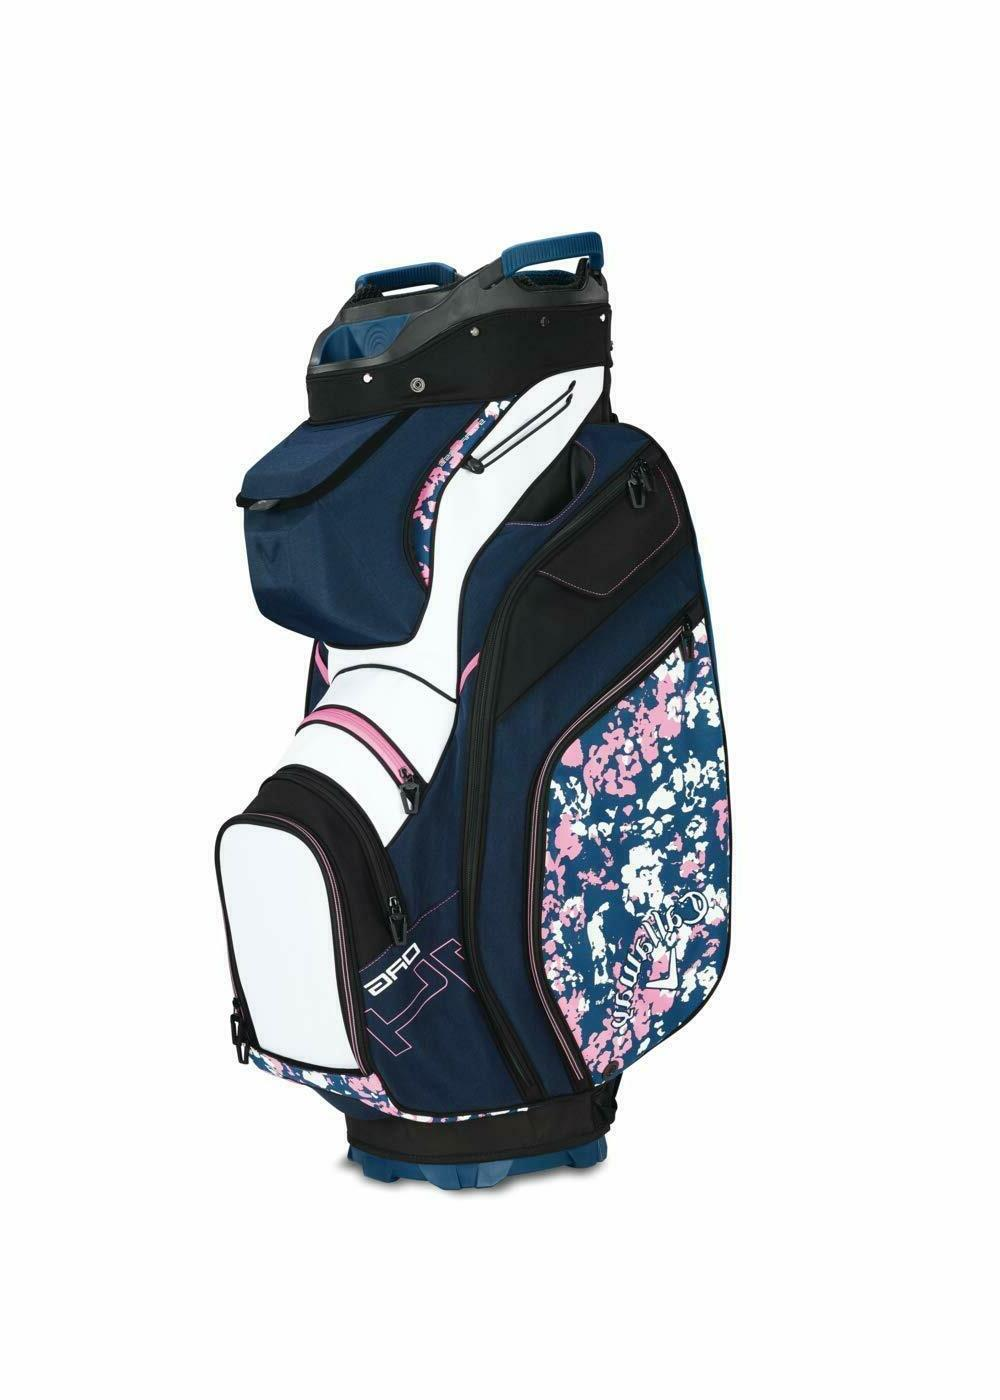 New Golf Uptown Bag COLOR: